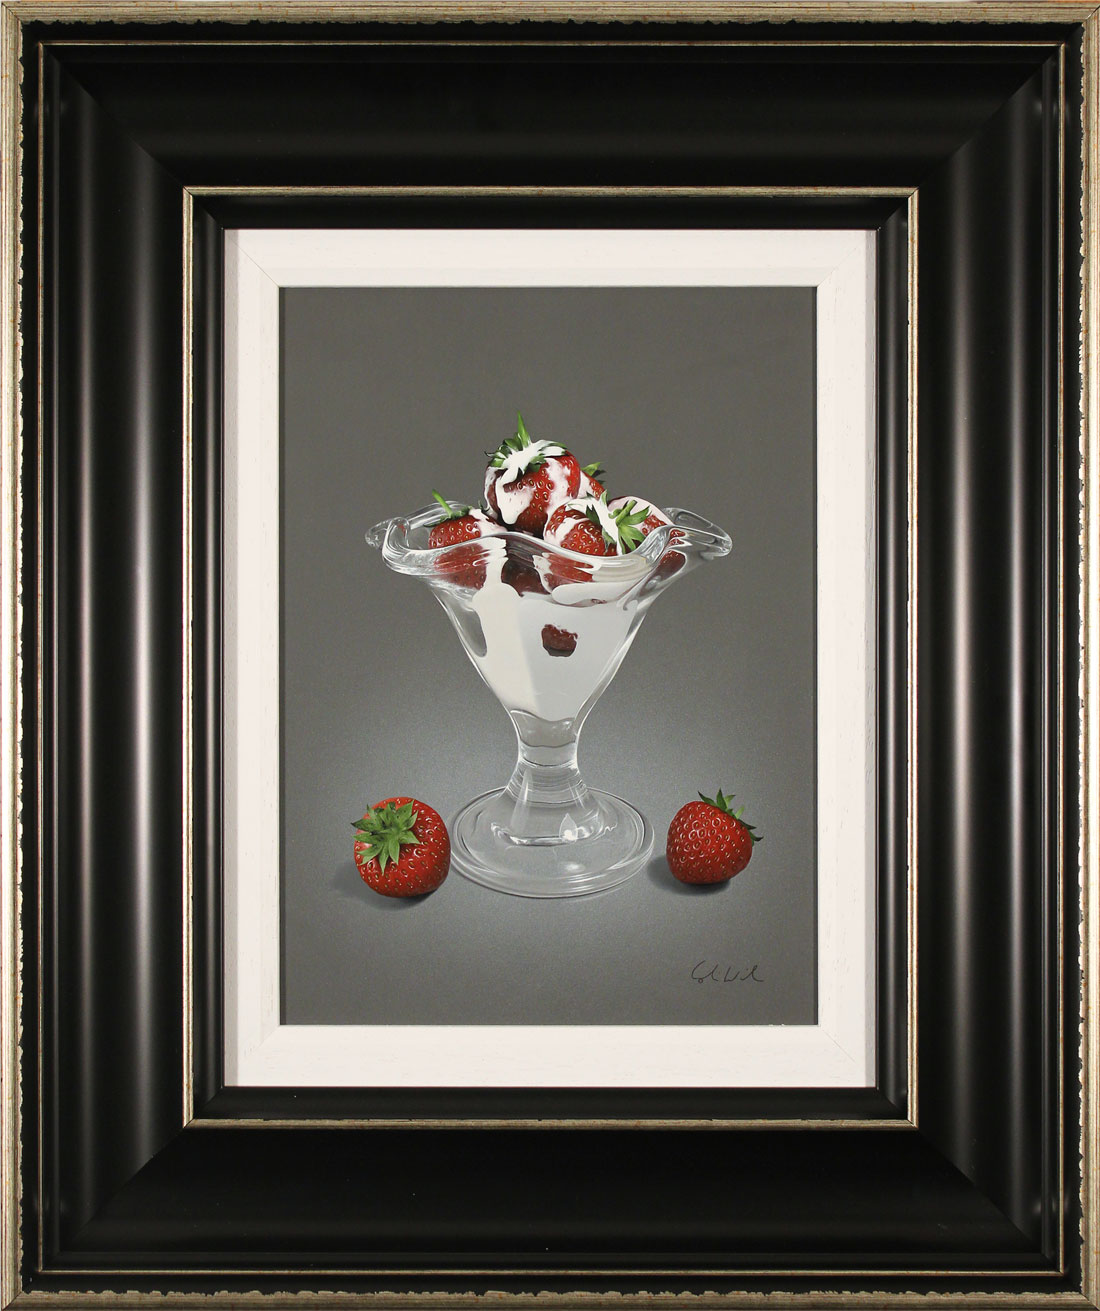 Colin Wilson, Original acrylic painting on board, Strawberries and Cream. Click to enlarge